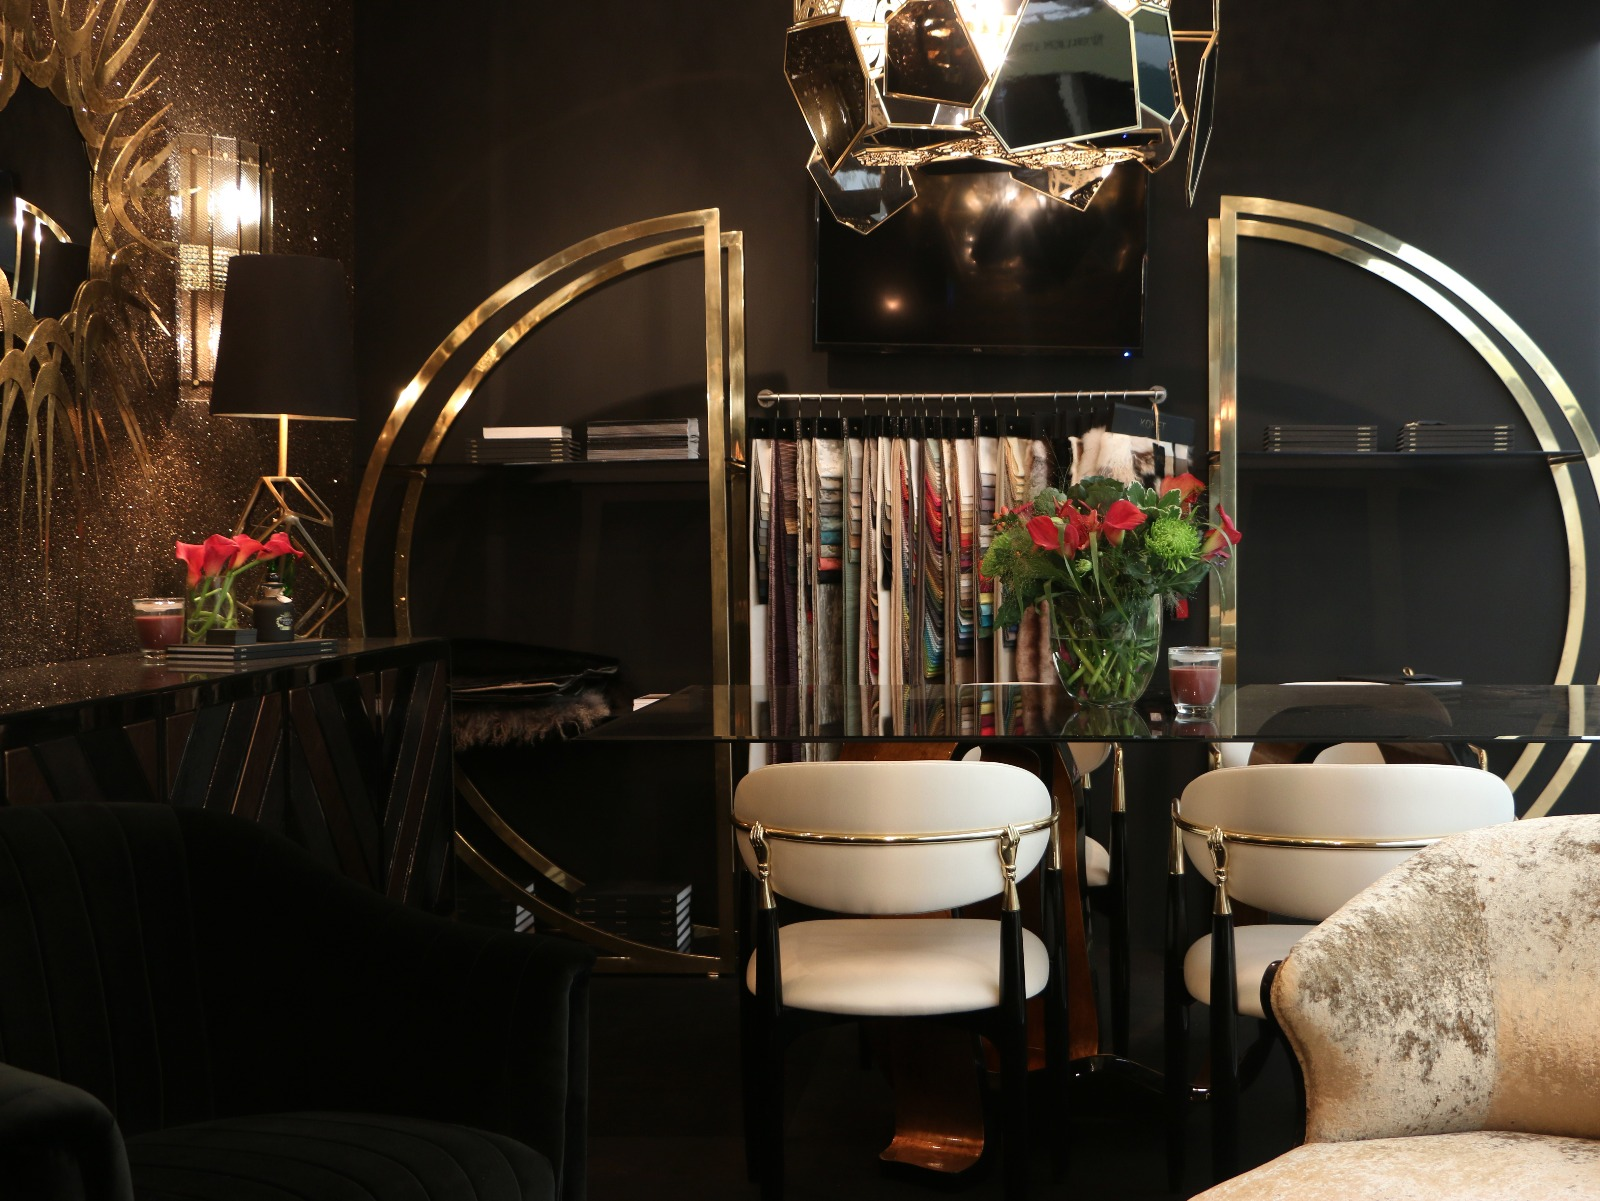 How to Get a Modern Home with a Black Luxury Interior Design